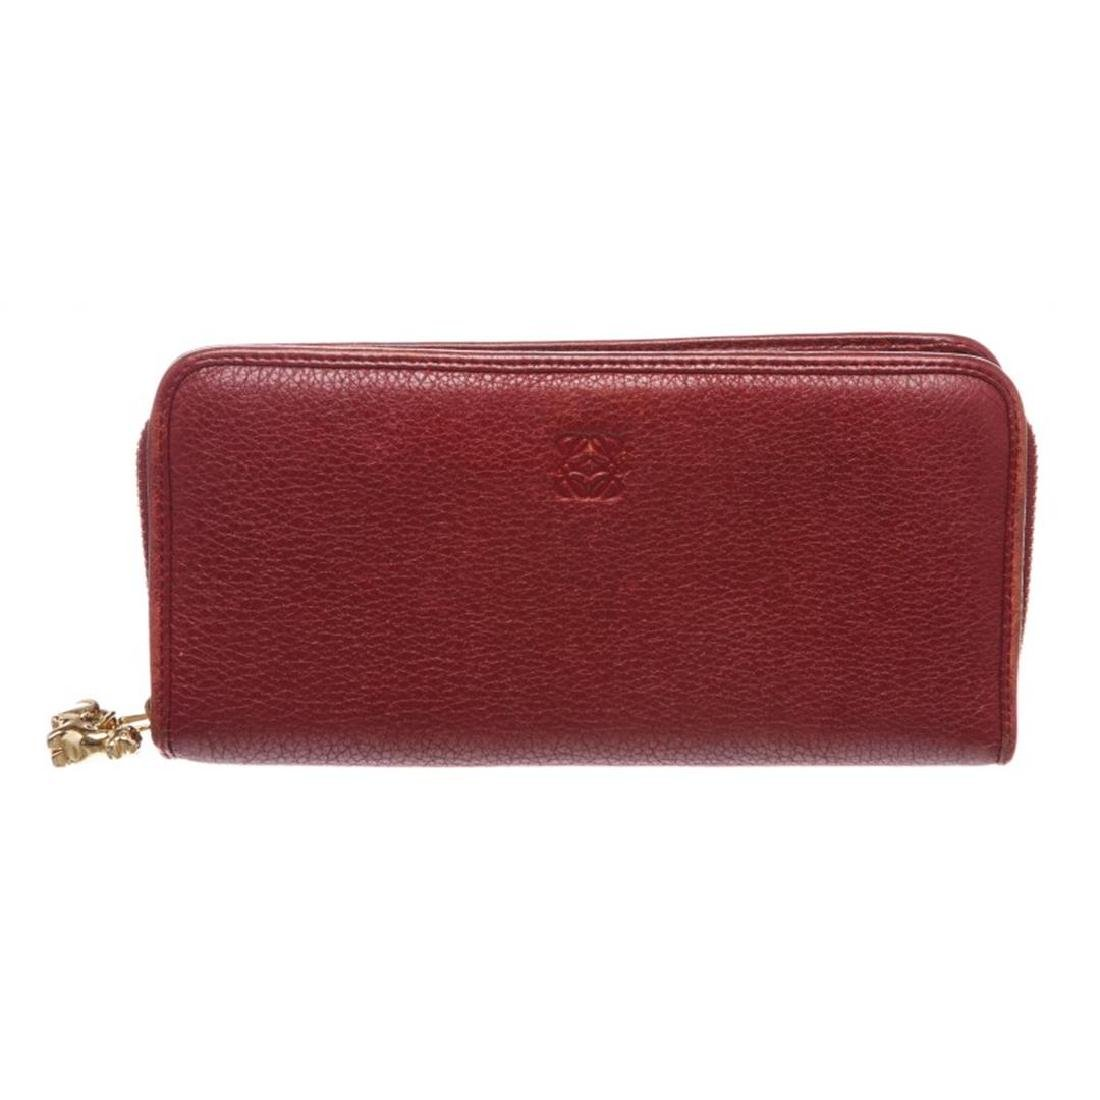 Loewe Red Leather Limited Edition Year of the Dragon